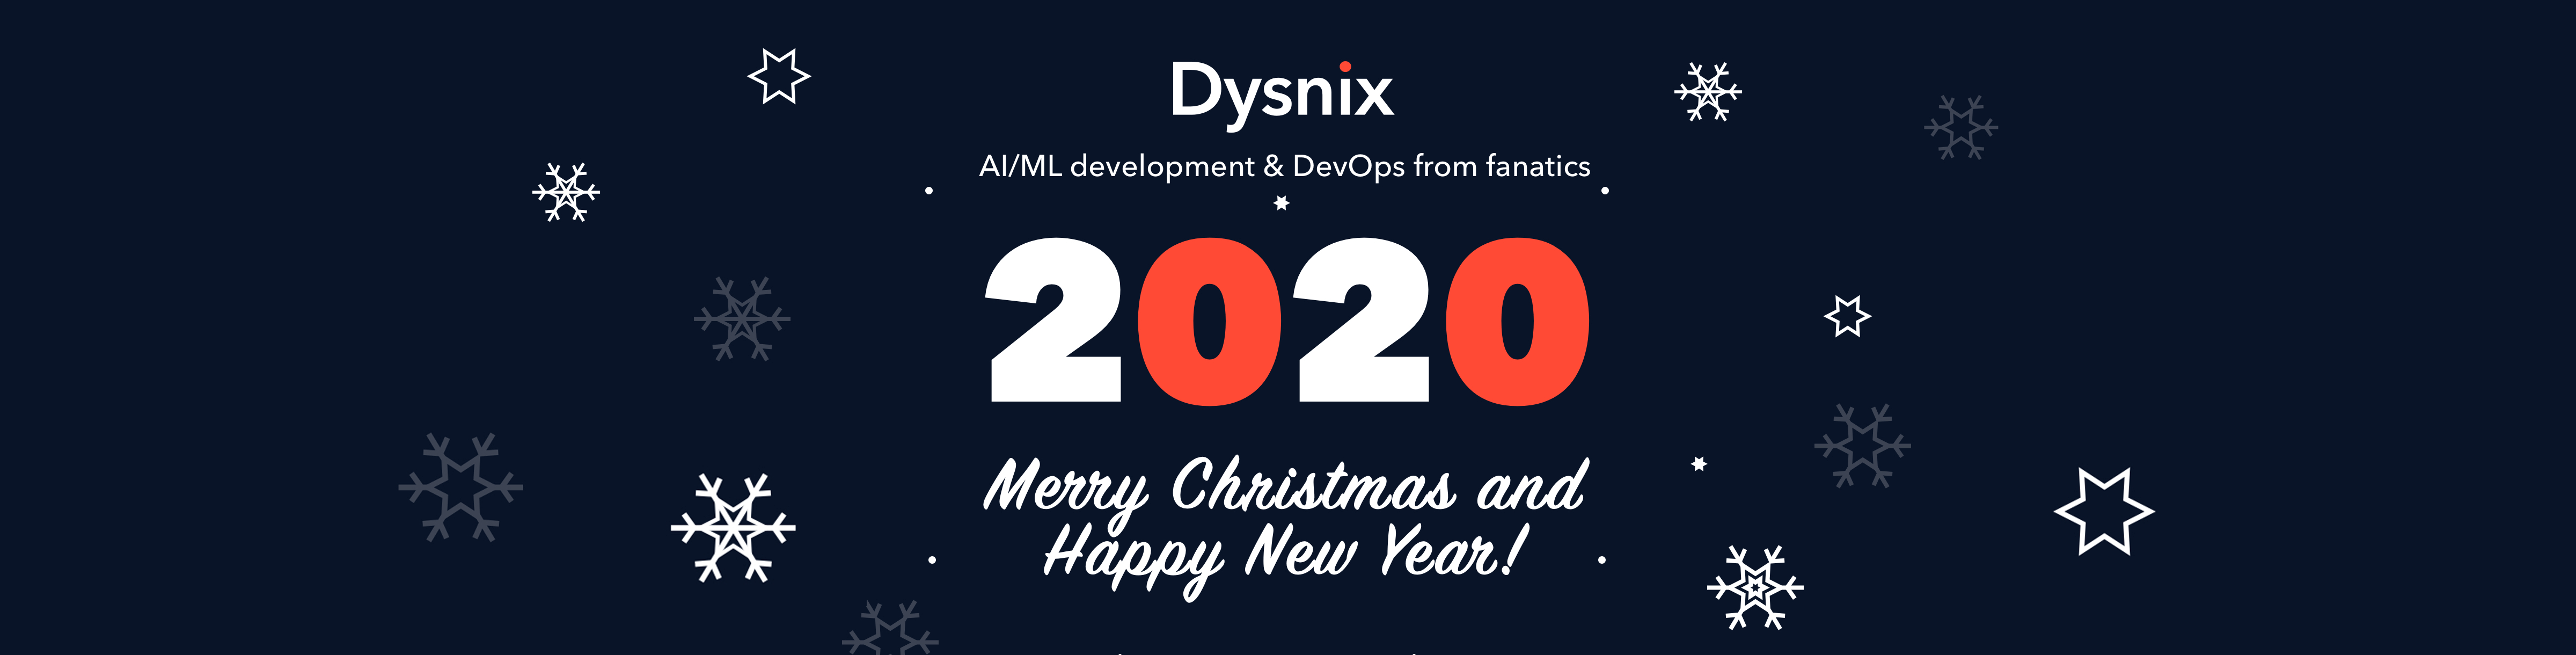 Dysnix wishes you the magical New Year 2020!